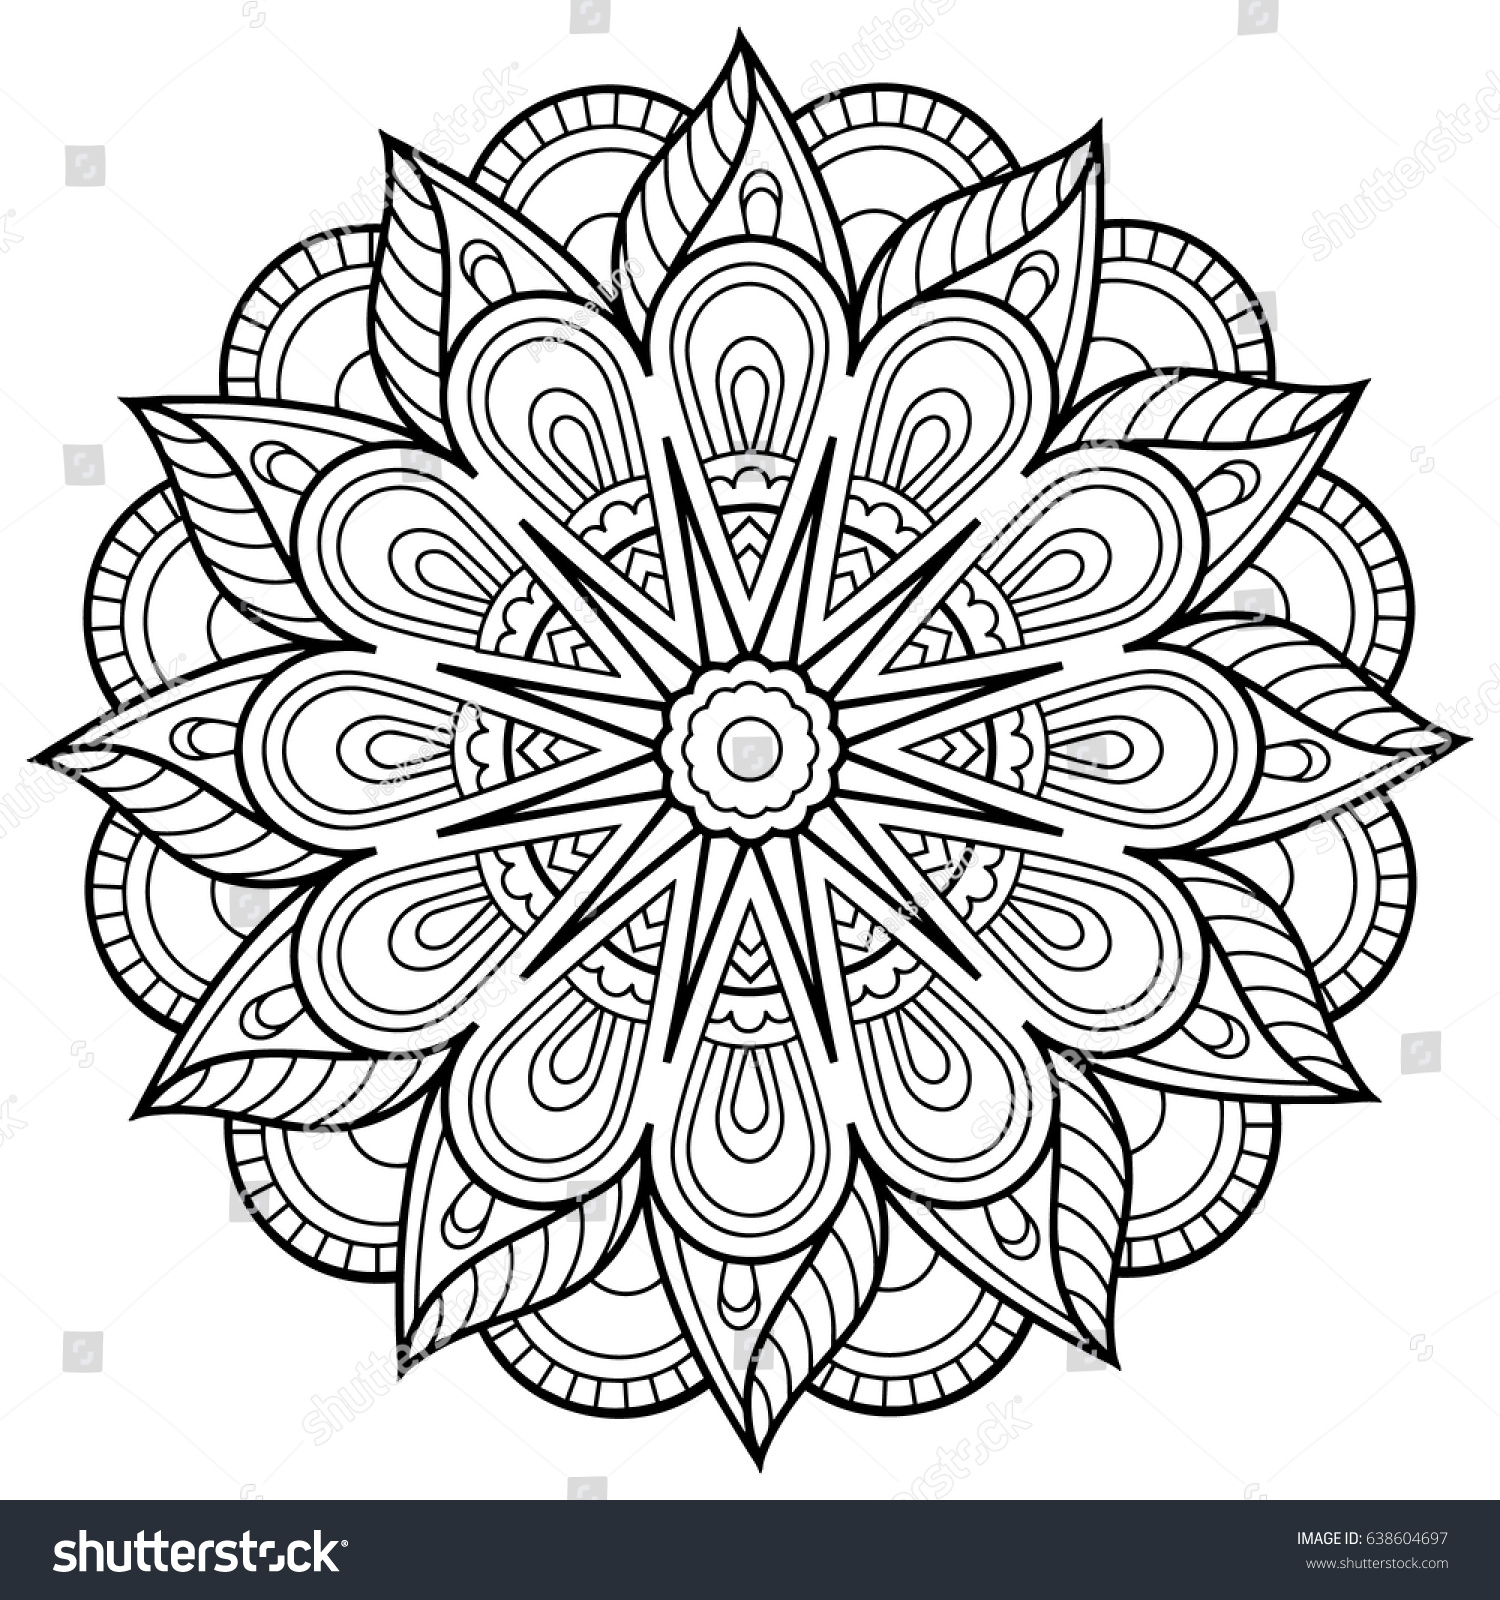 Floral Mandala Coloring Book For Adults